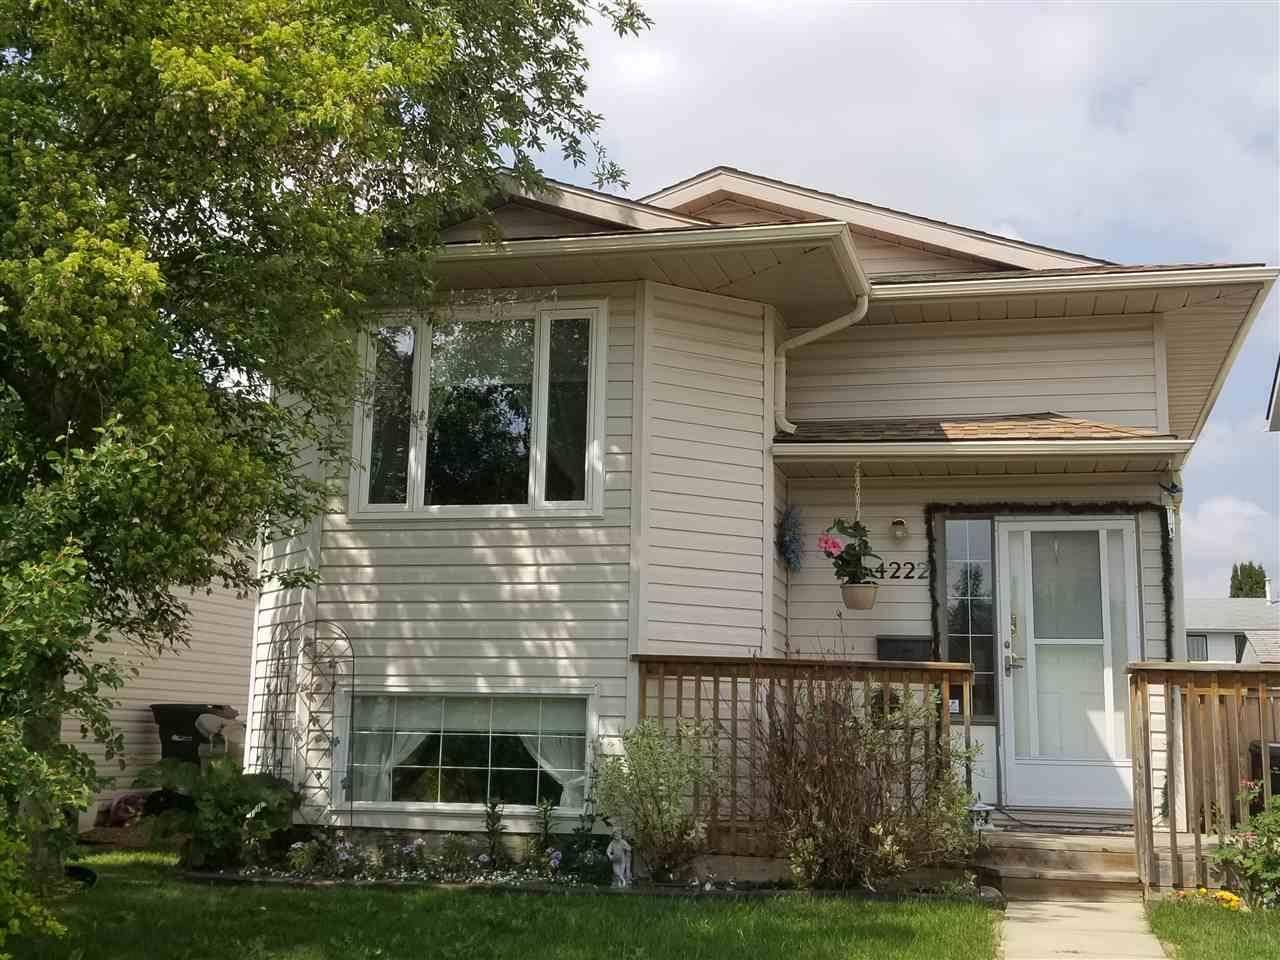 House for sale at 4222 50 Ave Cold Lake Alberta - MLS: E4161971